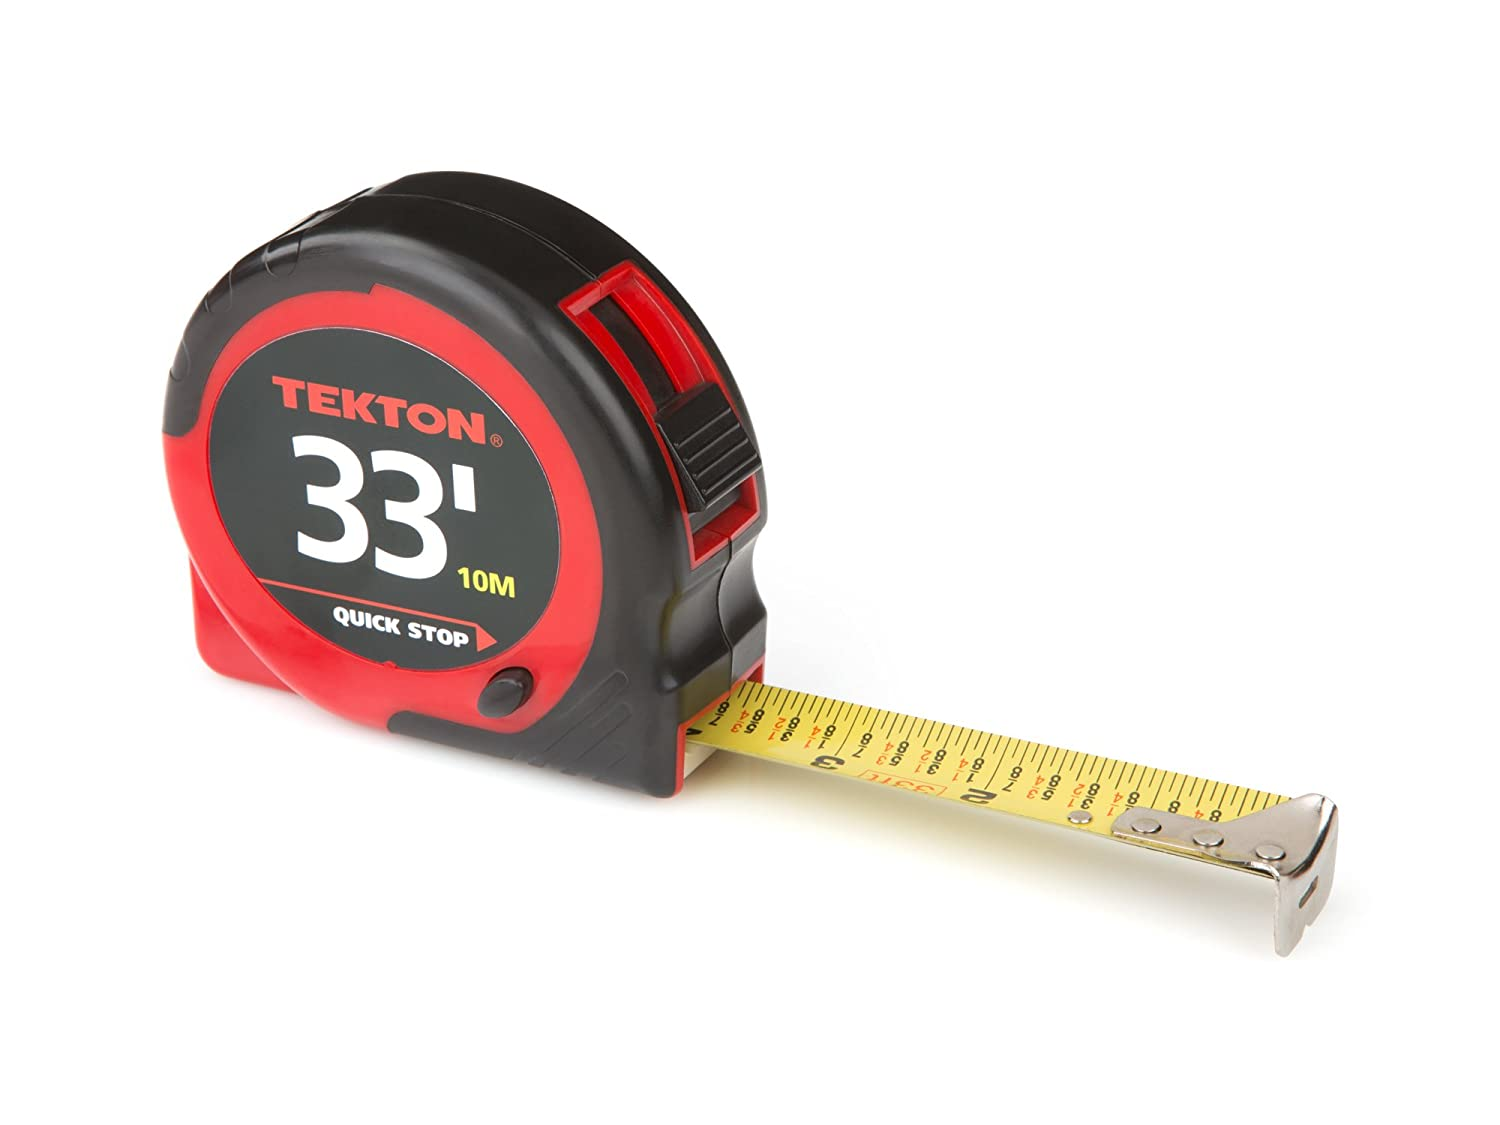 TEKTON 71951 12-Foot by 1/2-Inch Tape Measure Michigan Industrial Tools